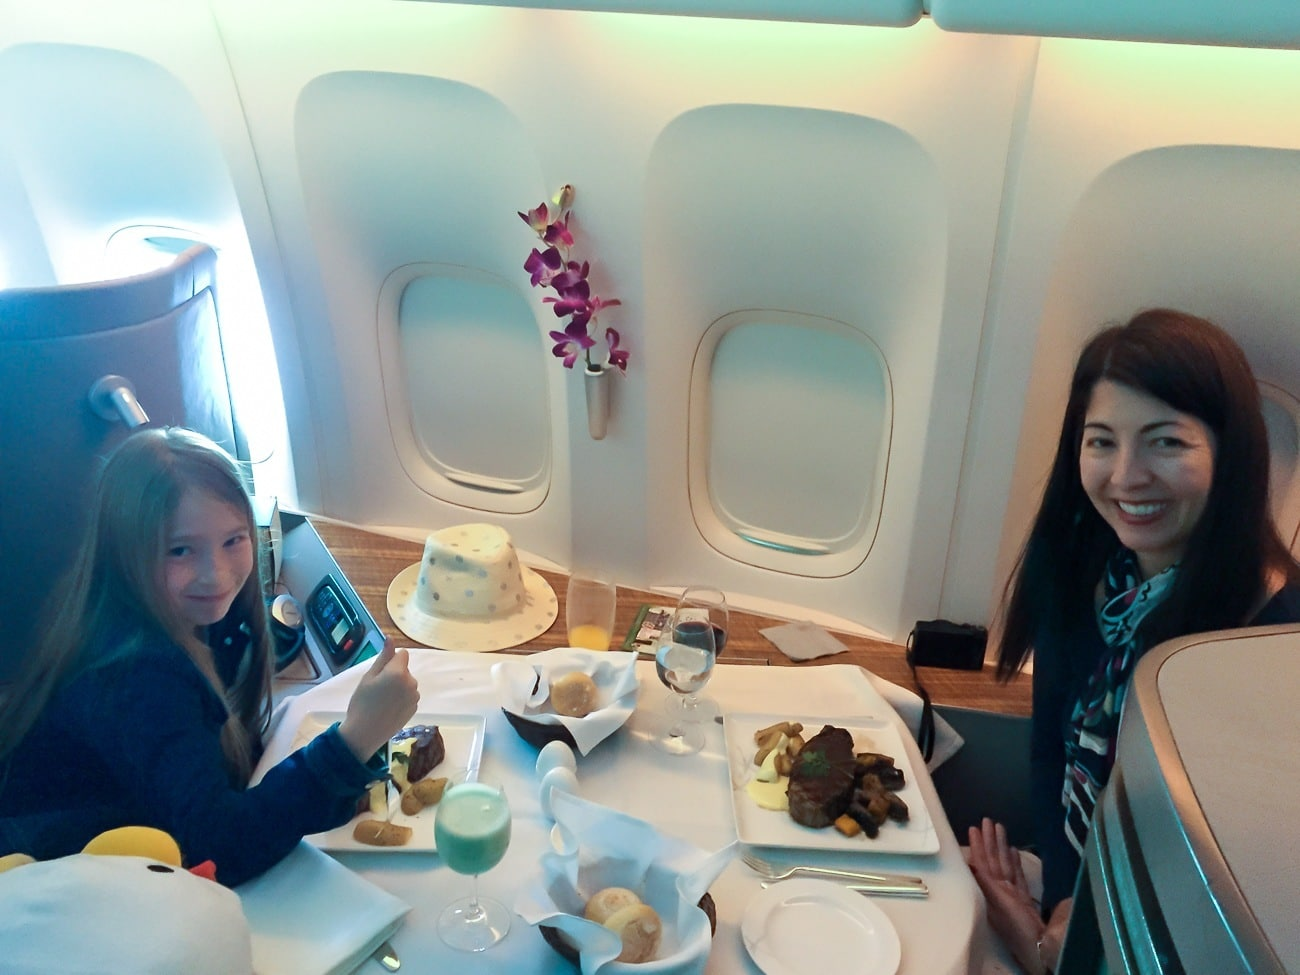 You can dine with a companion in Cathay Pacific's first class.